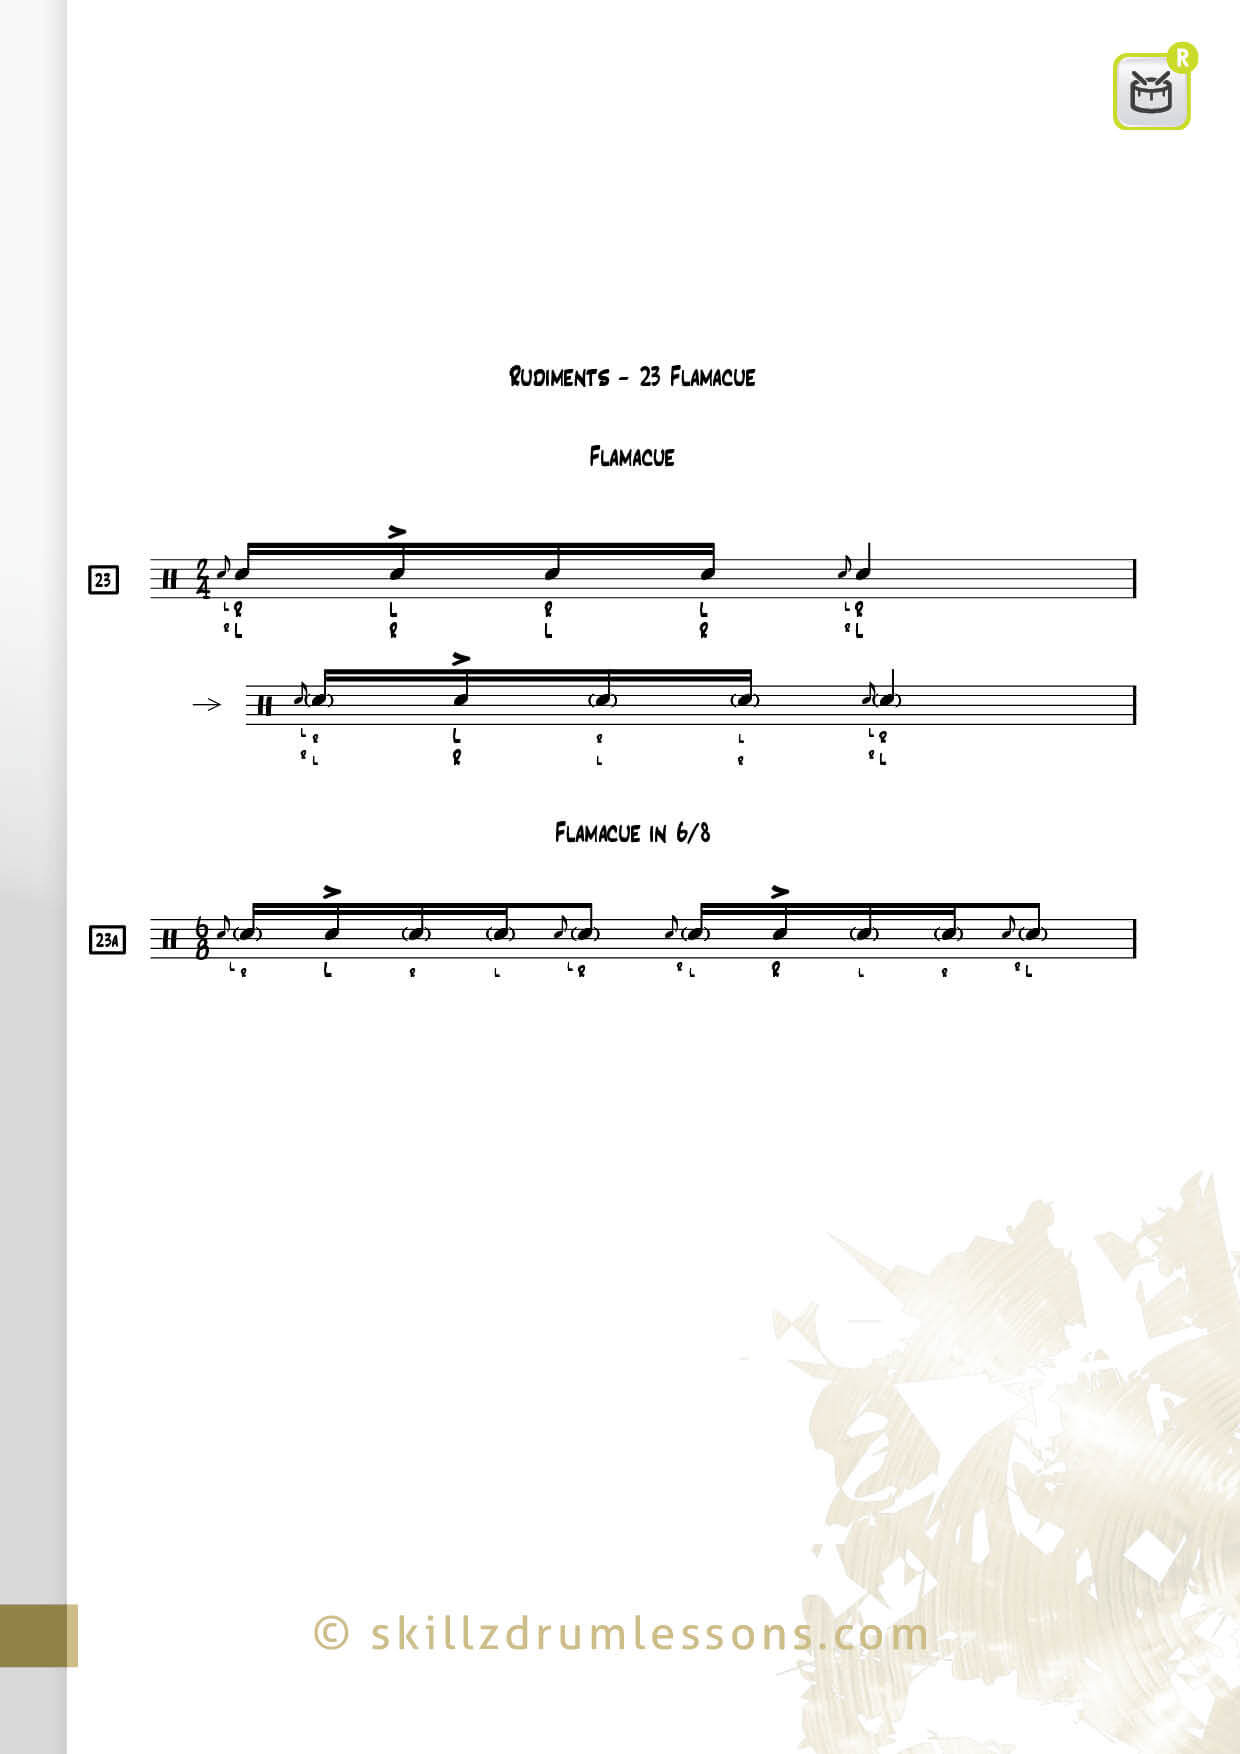 This is an image of the Official 40 Essential P.A.S. Rudiments #23 The Flamacue by Skillz Drum Lessons